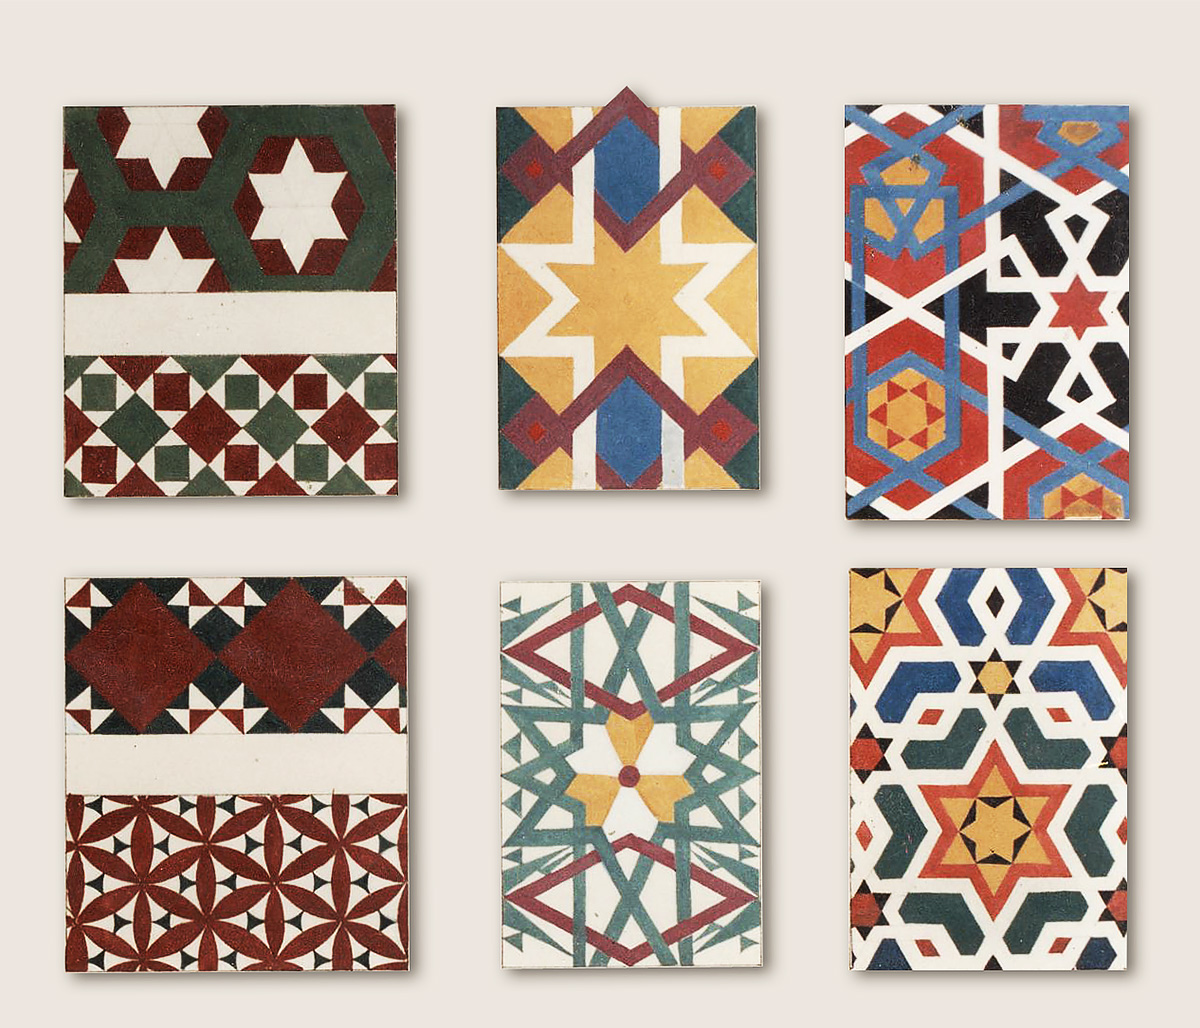 Geometric ornament samples - Alexander Hamilton - Decorative Painting Studio - London